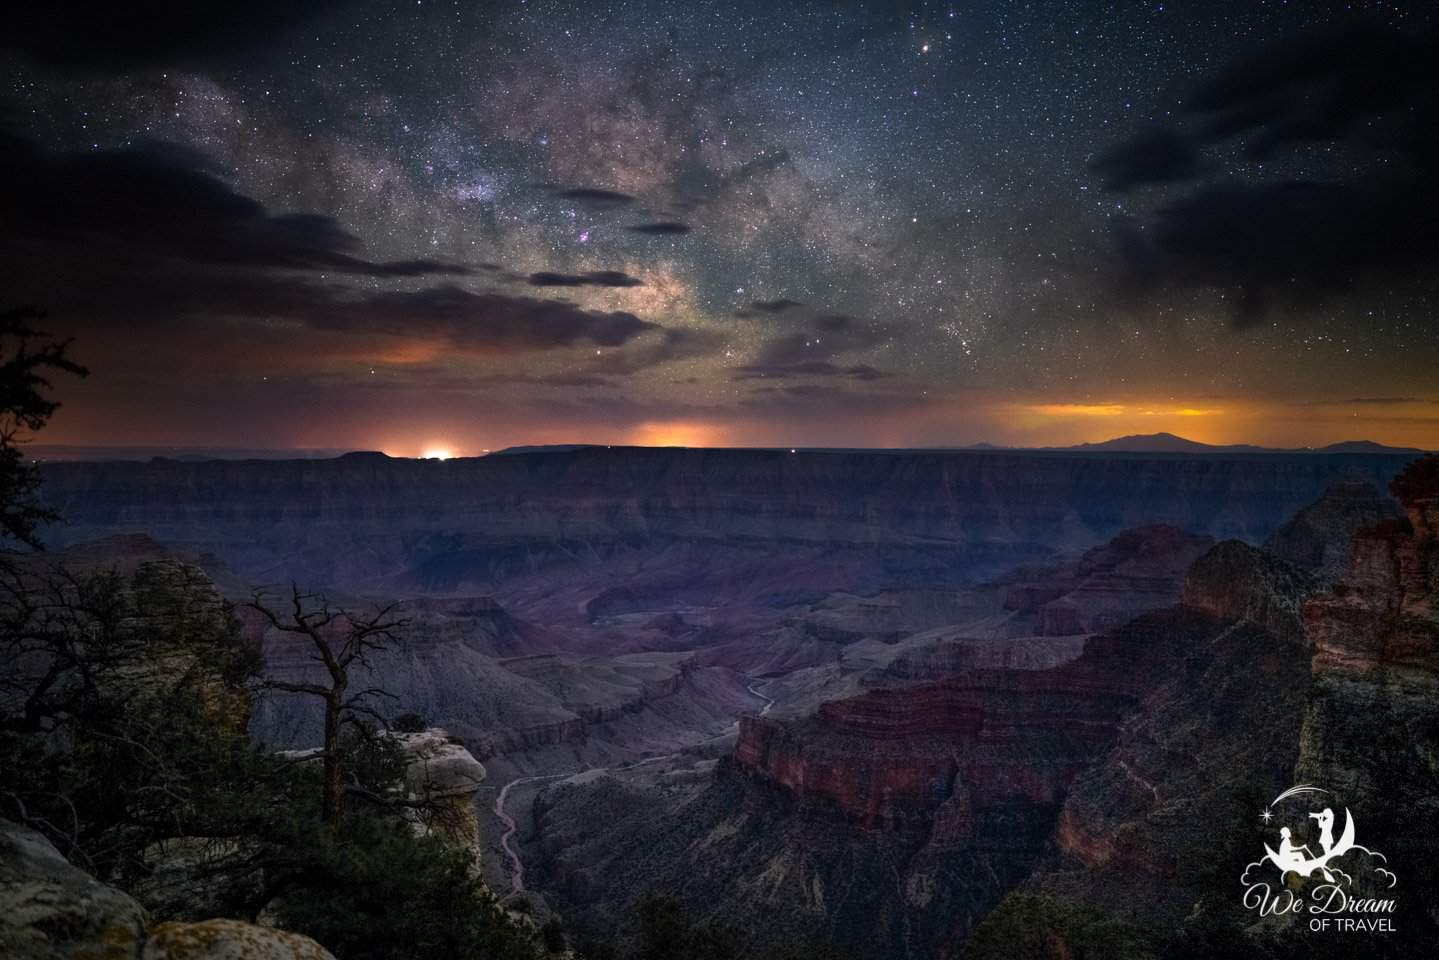 Every night was spent doing night photography, capturing the Milky Way rising over the Grand Canyon North Rim.